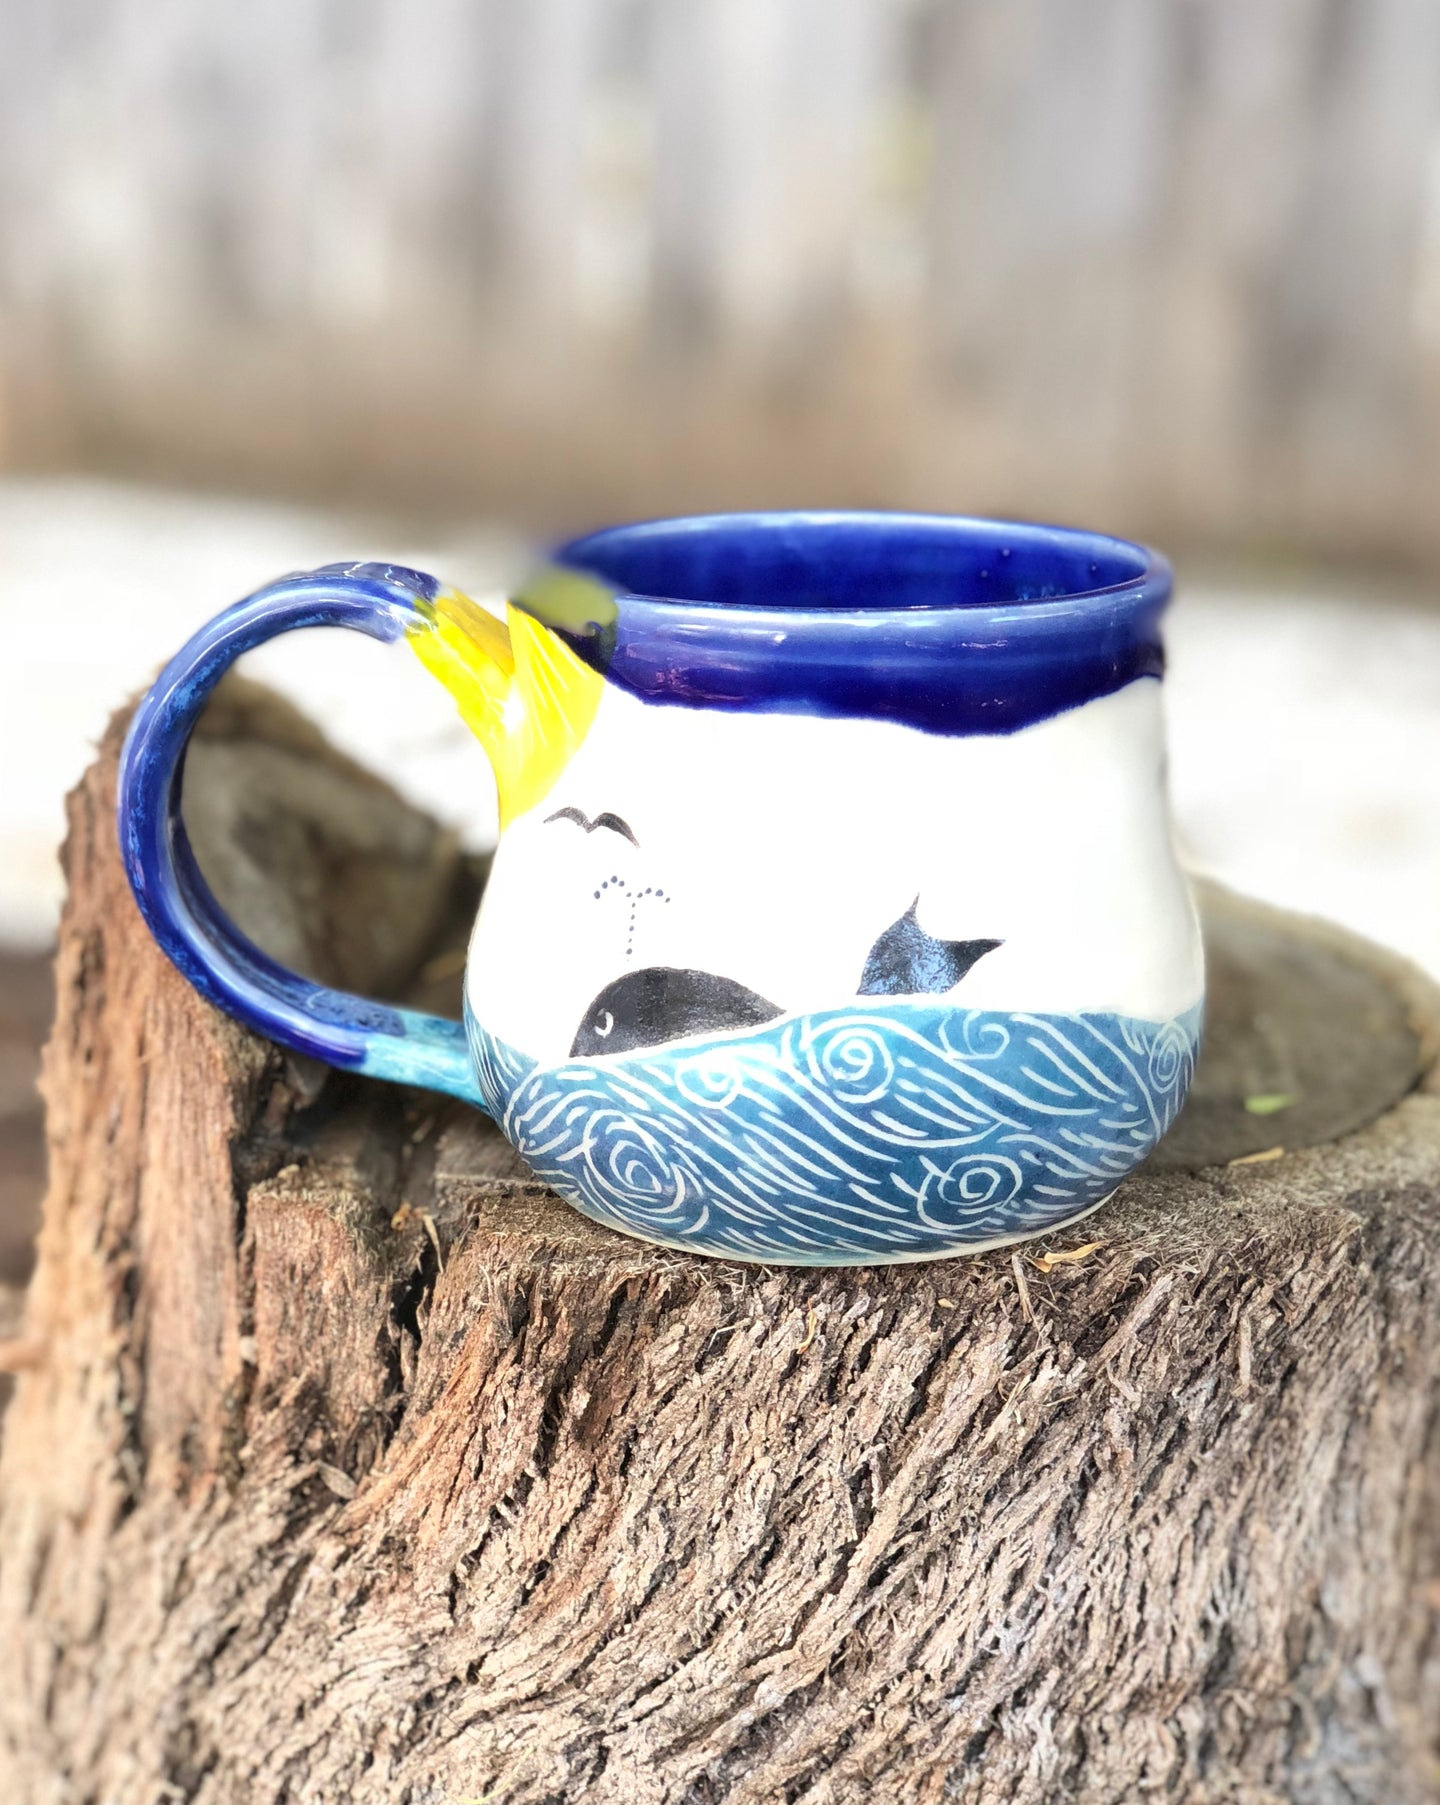 Ocean Series N°. 11 - Handmade Ceramic Mug with Hand-painted  & carved Whale and ocean - Hsiaowan Studios Handmade Ceramics Pottery